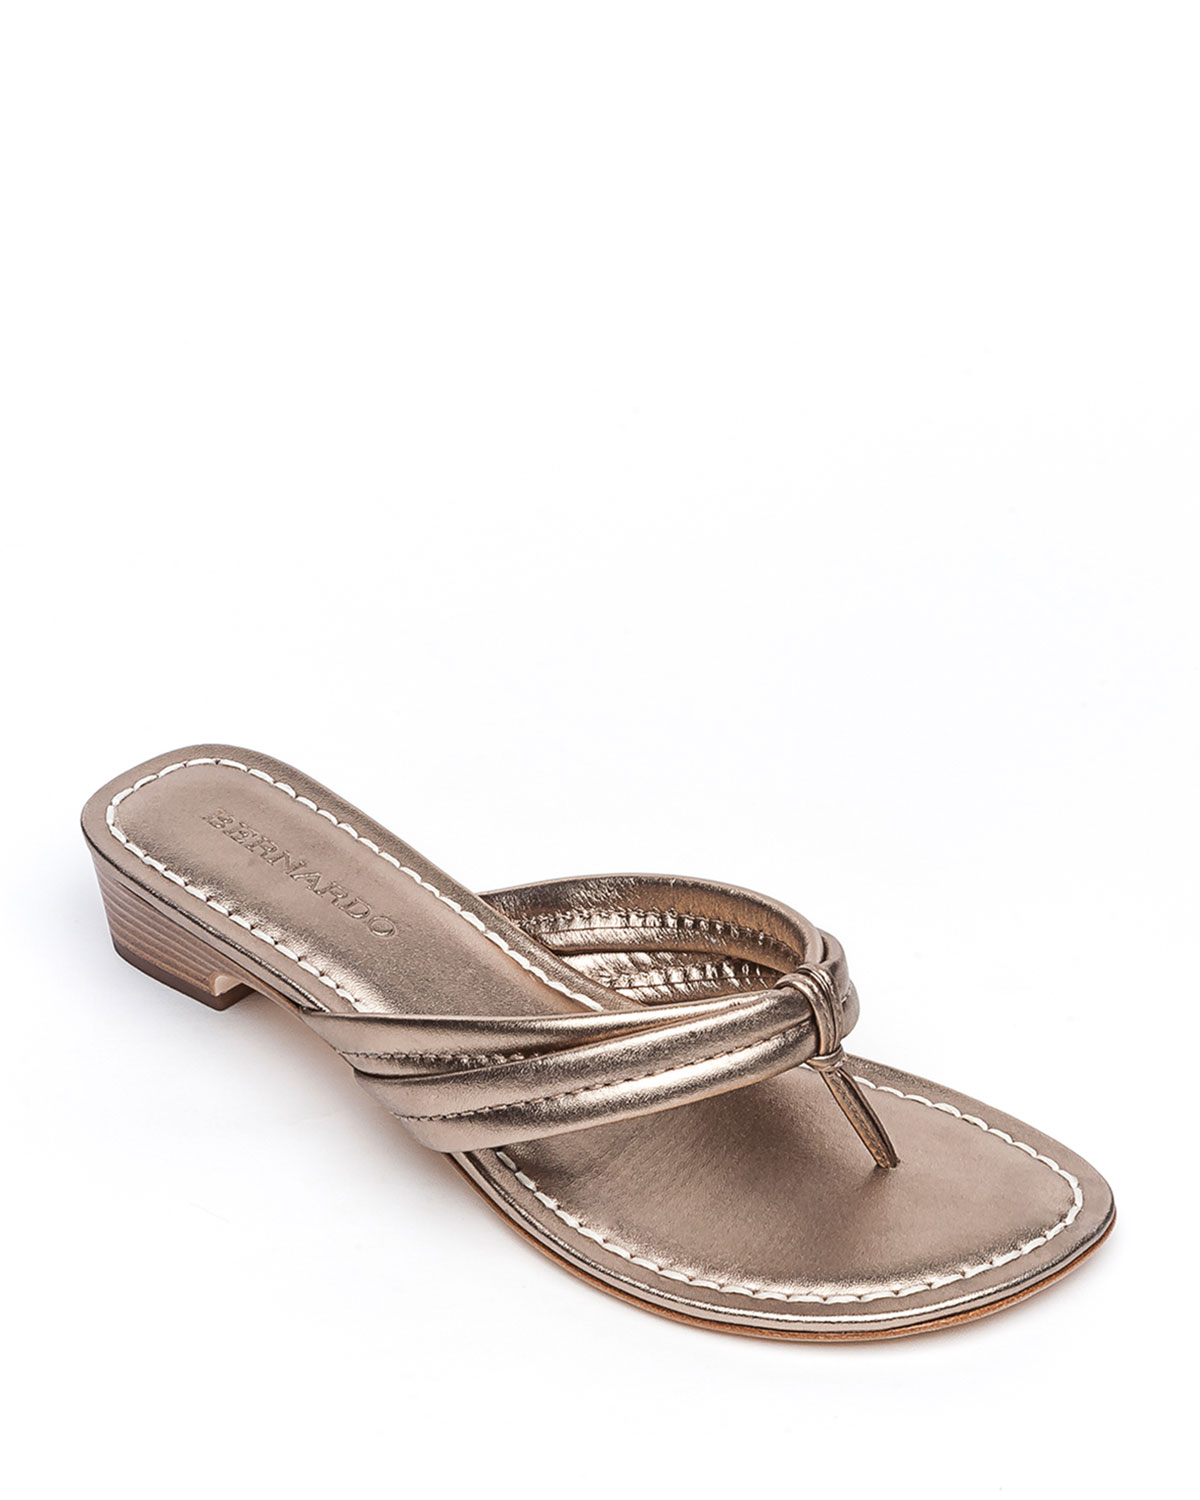 Bernardo Miami Metallic Thong Sandals, Gray